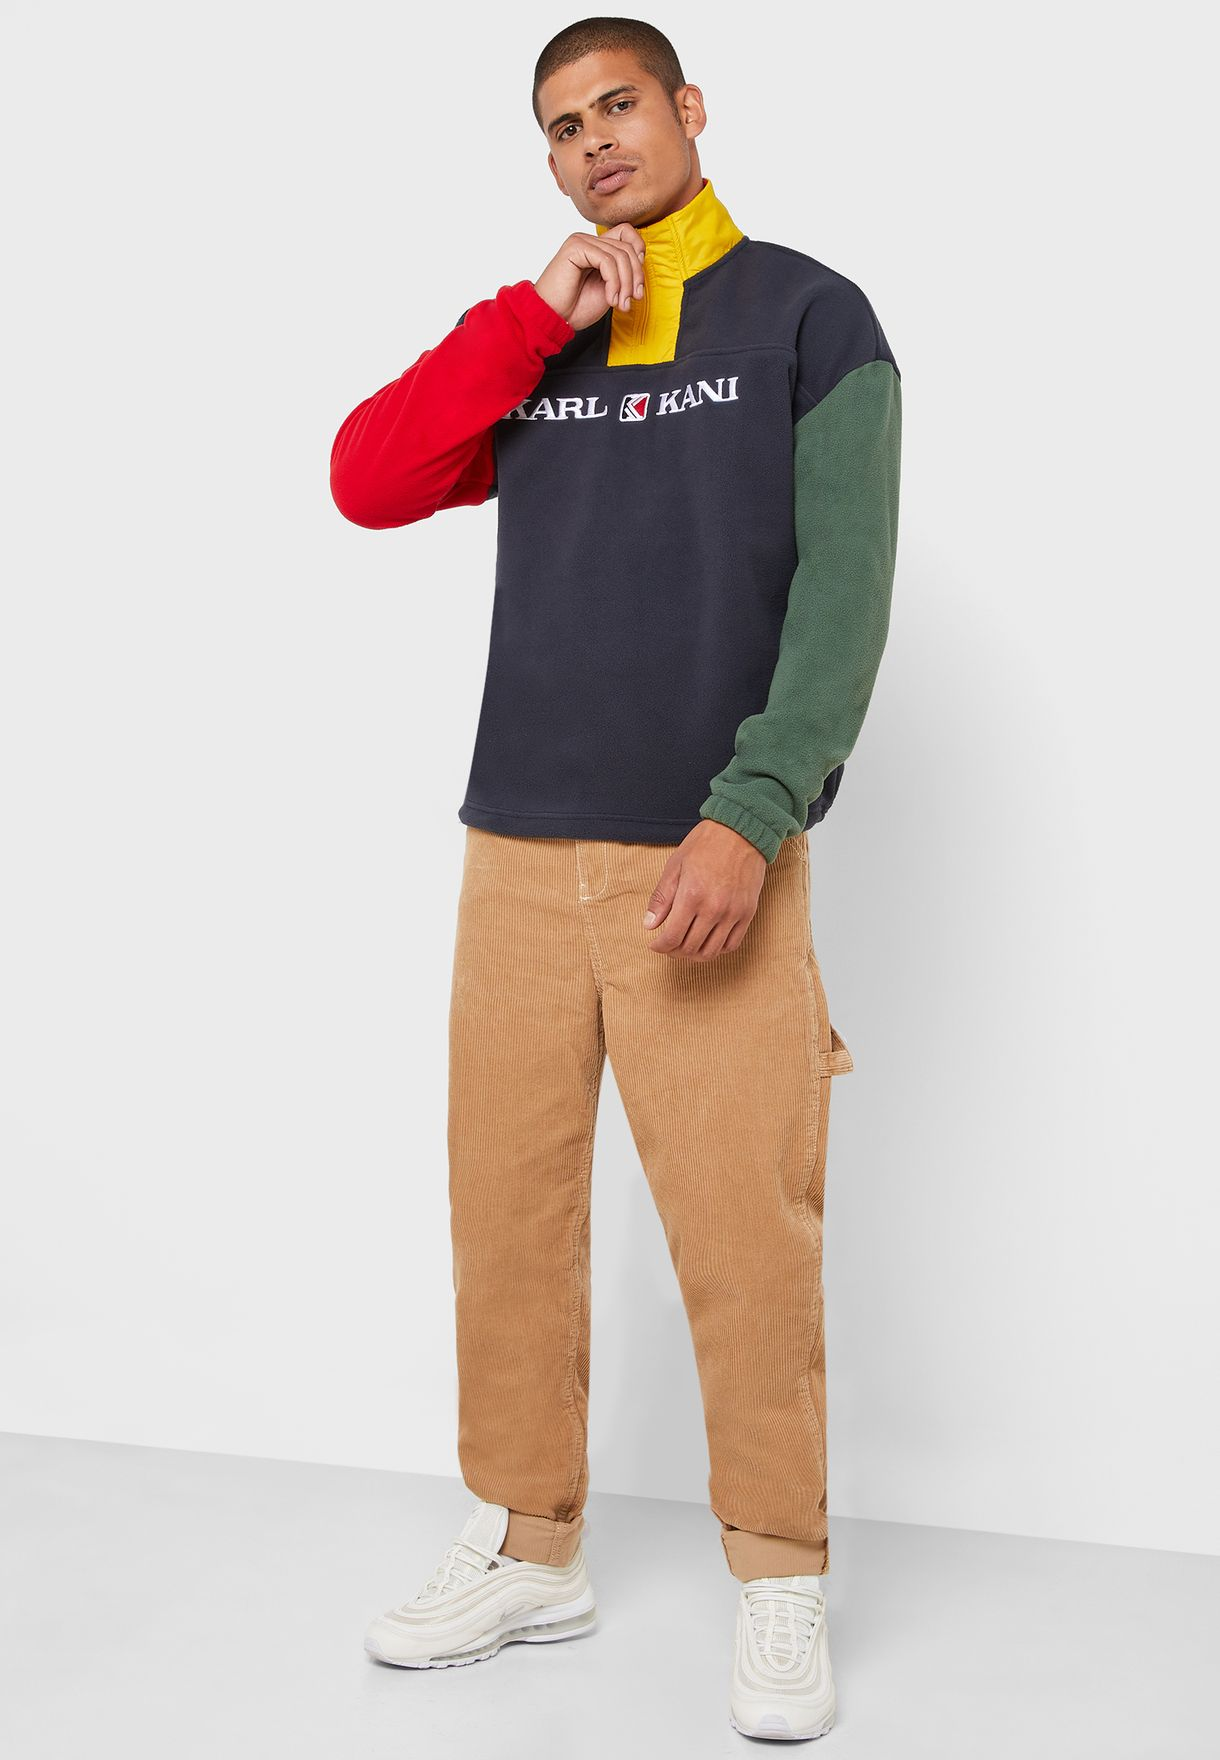 Retro Block Sweatshirt